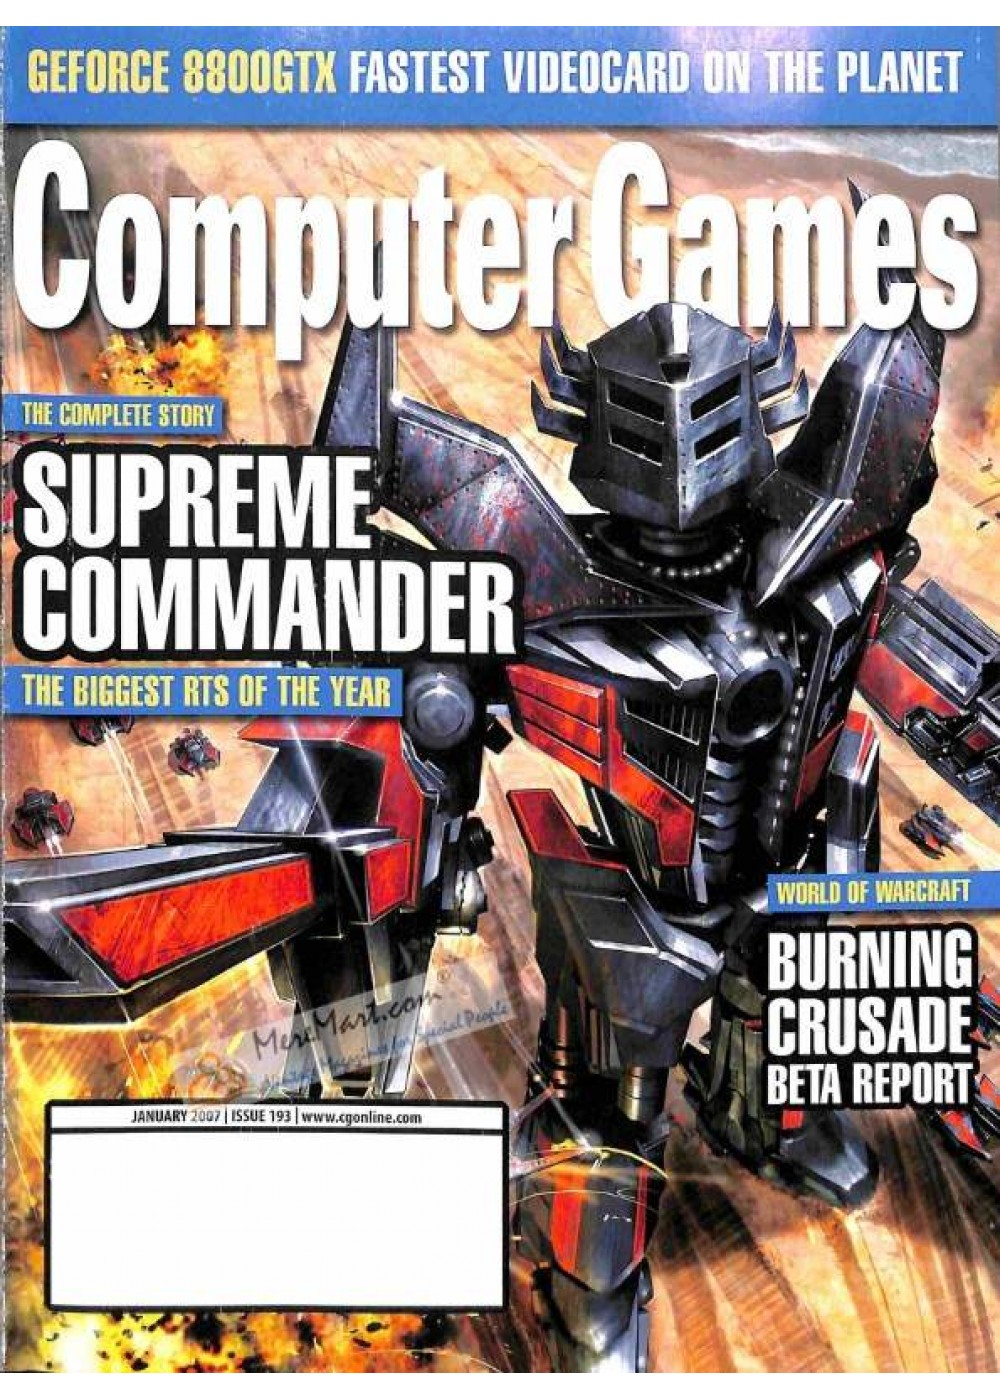 image relating to Printable Video Game Covers called Deal with Print of Computer system Online games, January 2007